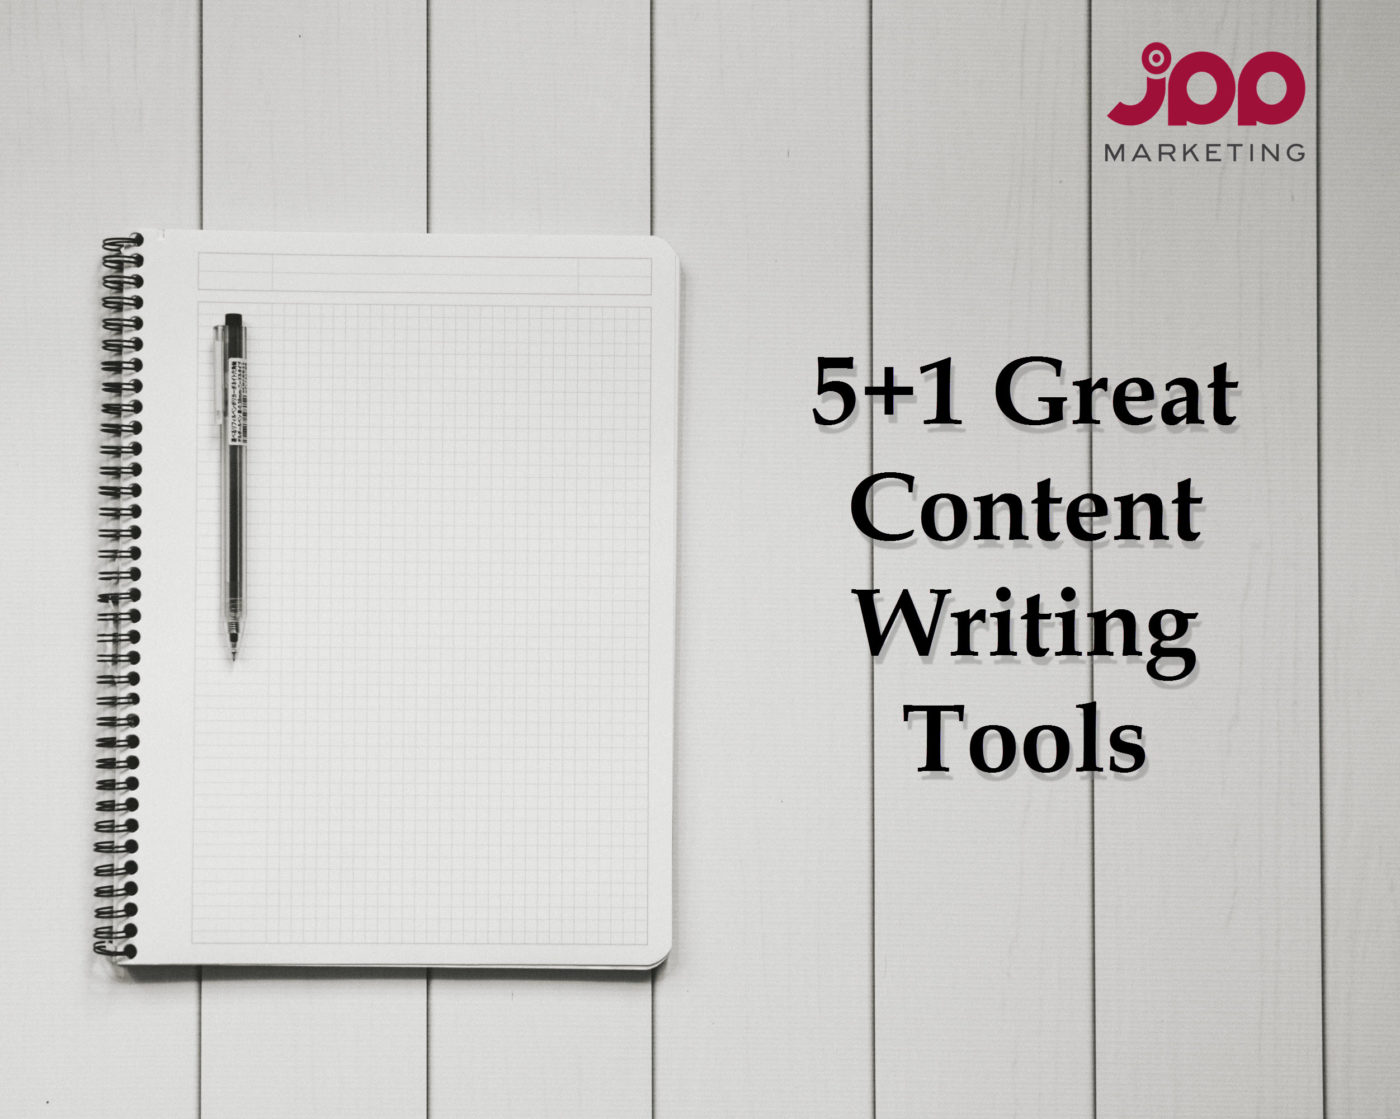 5+1 Awesome Content Writing Tools - JPP Marketing